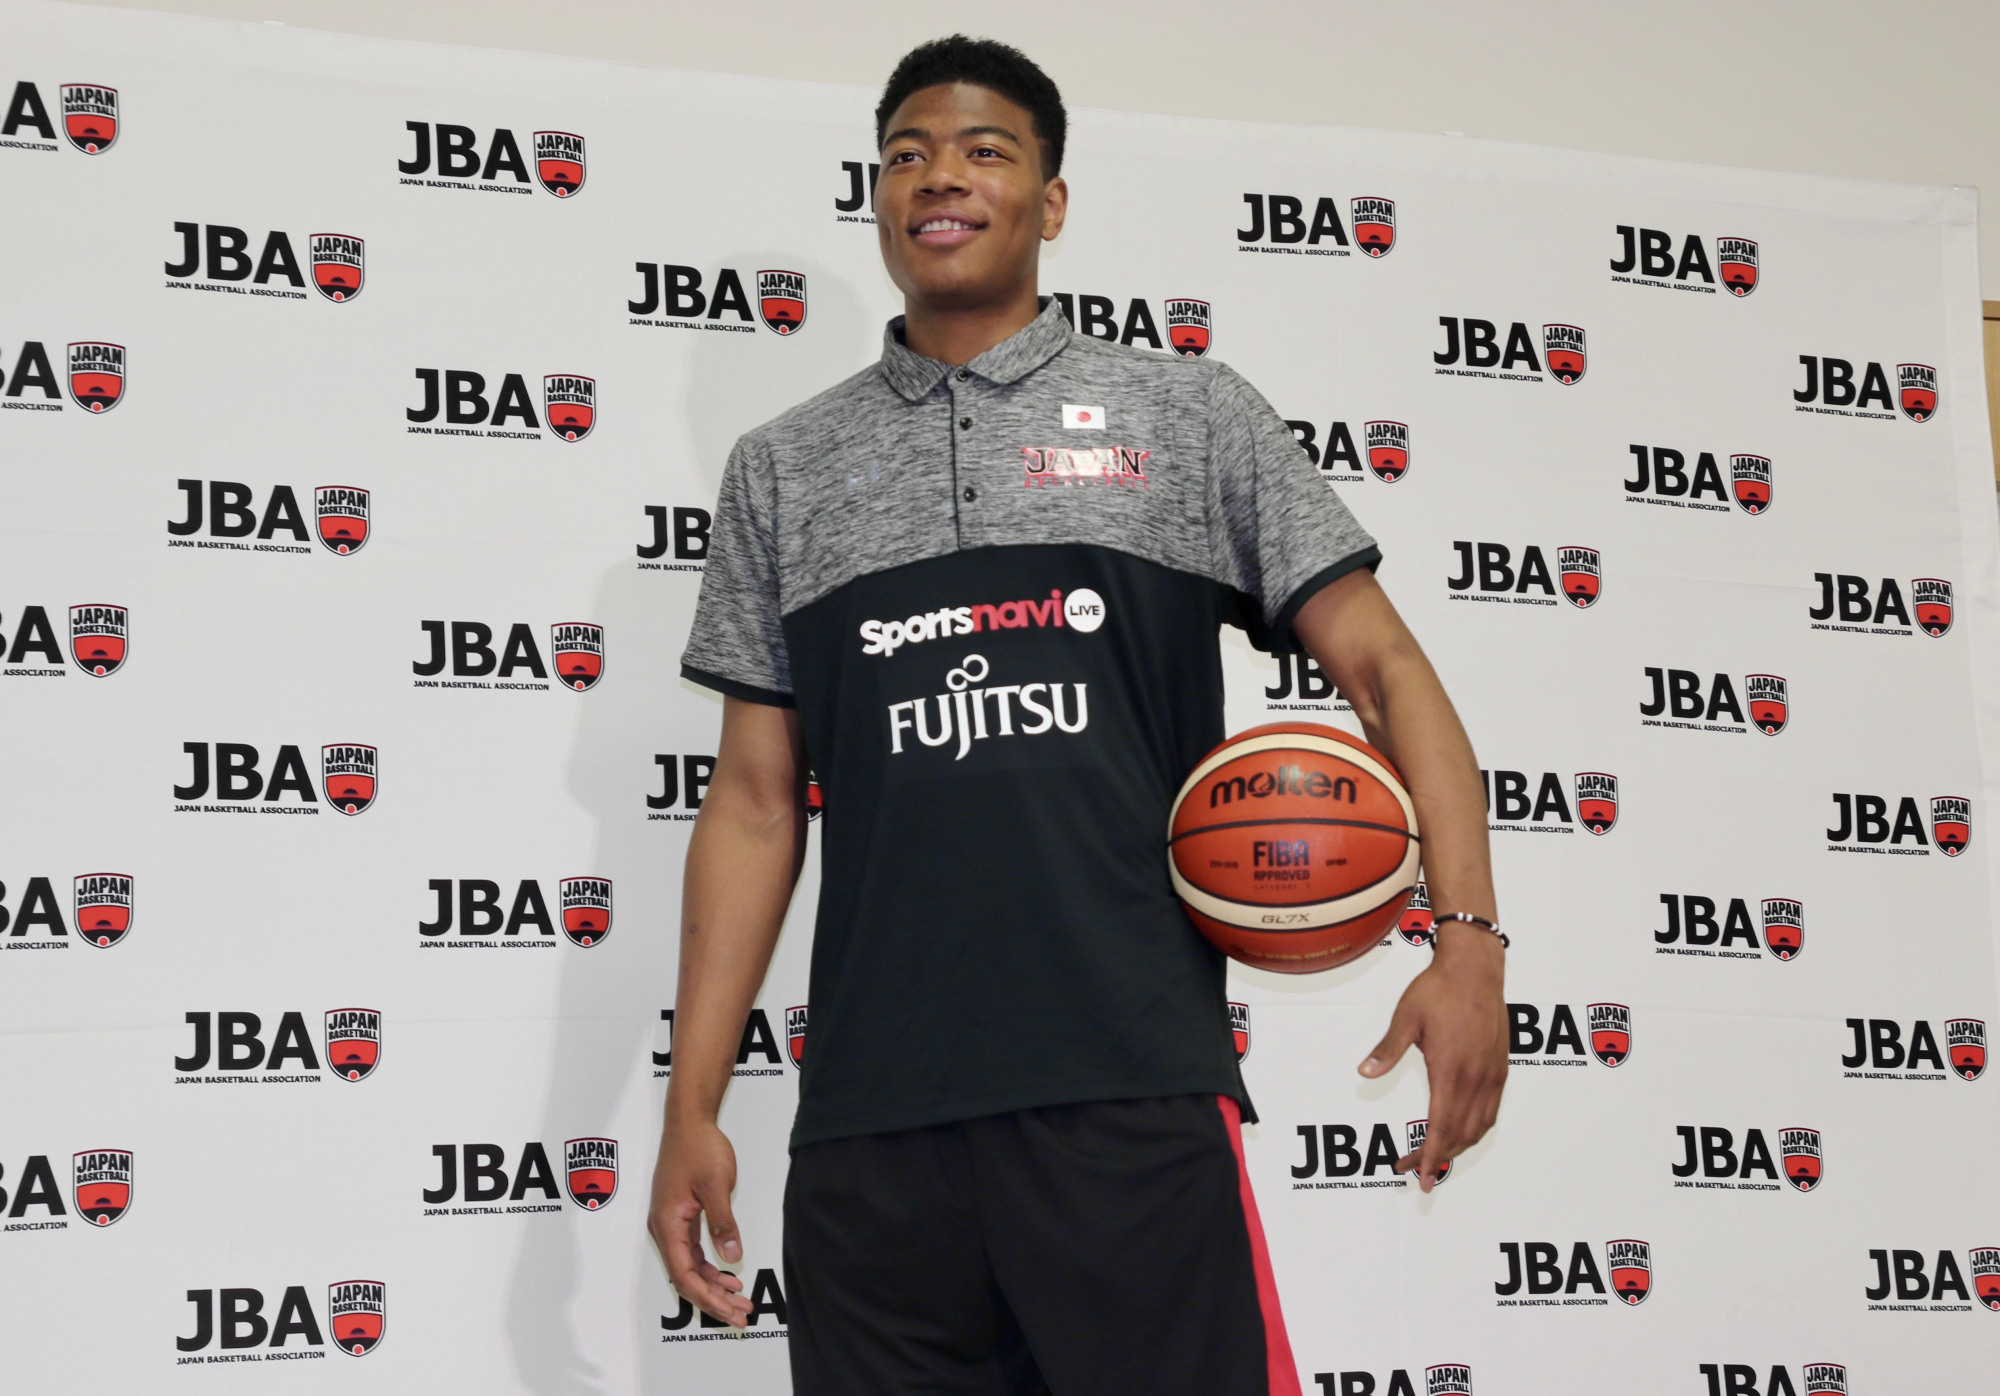 Rui Hachimura poses for photos at Tokyo's National Training Center on Friday following a news conference. | KAZ NAGATSUKA